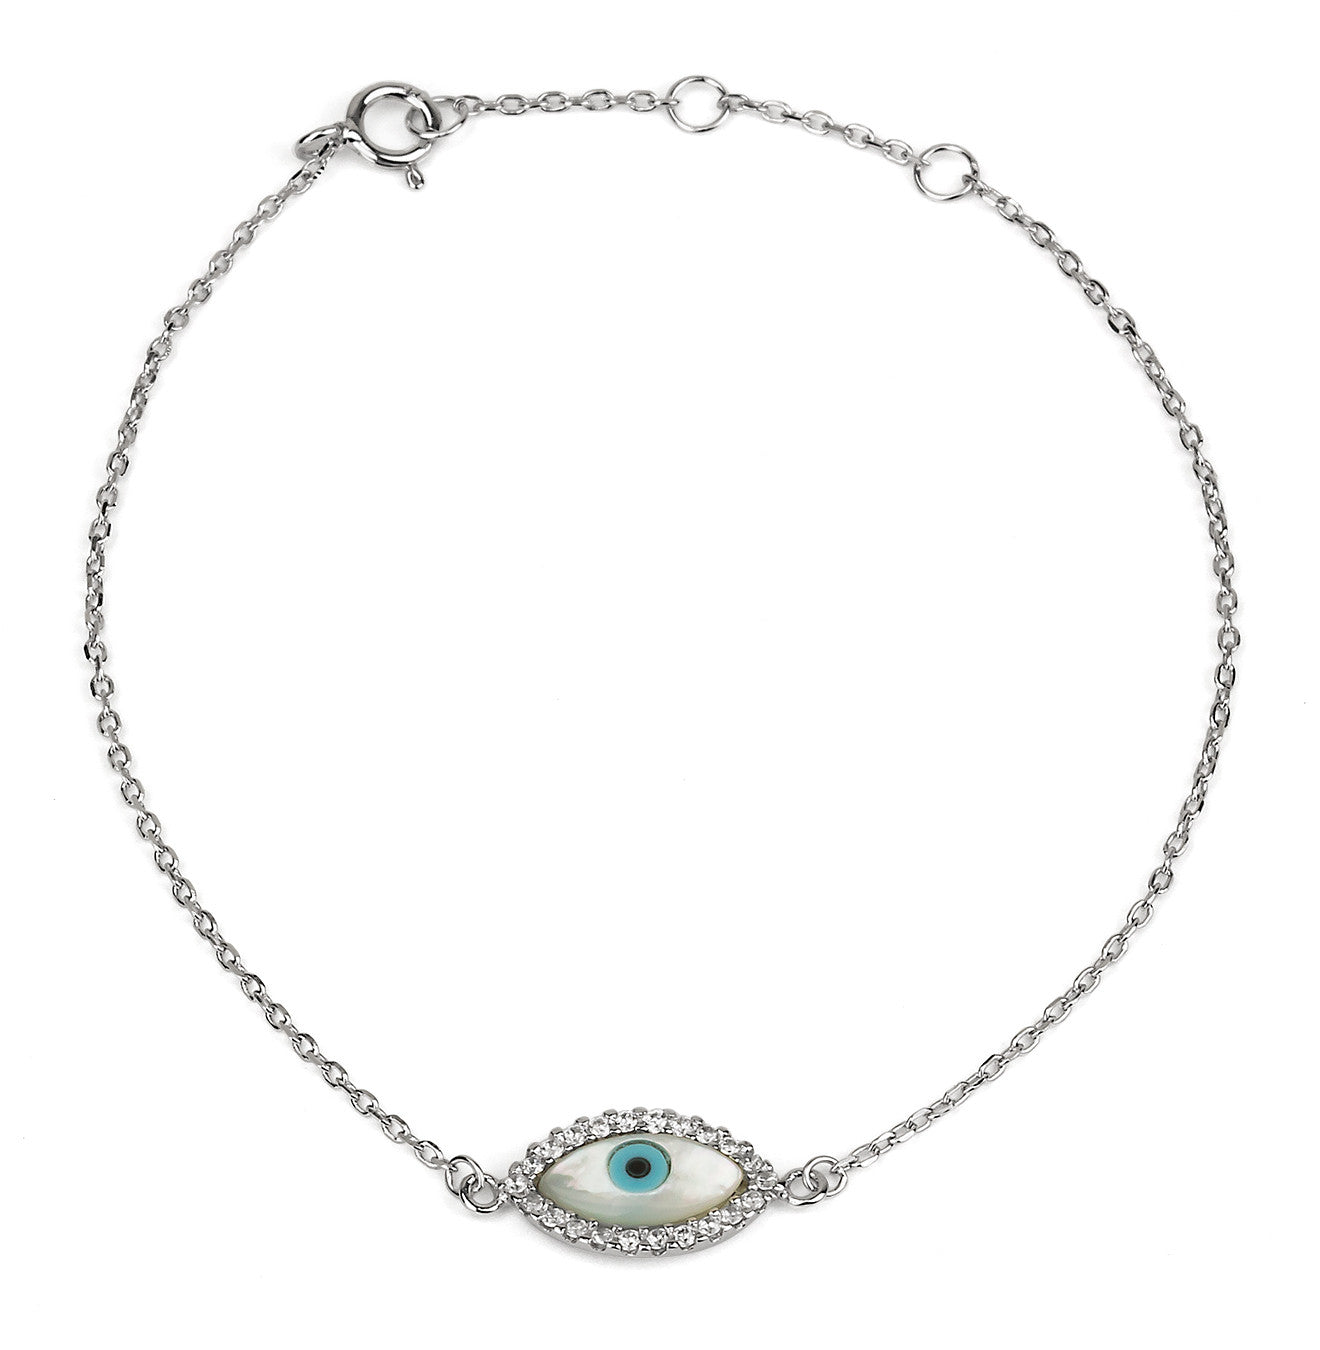 Evil Eye Mother of Pearl Delicate 925 Silver Bracelet